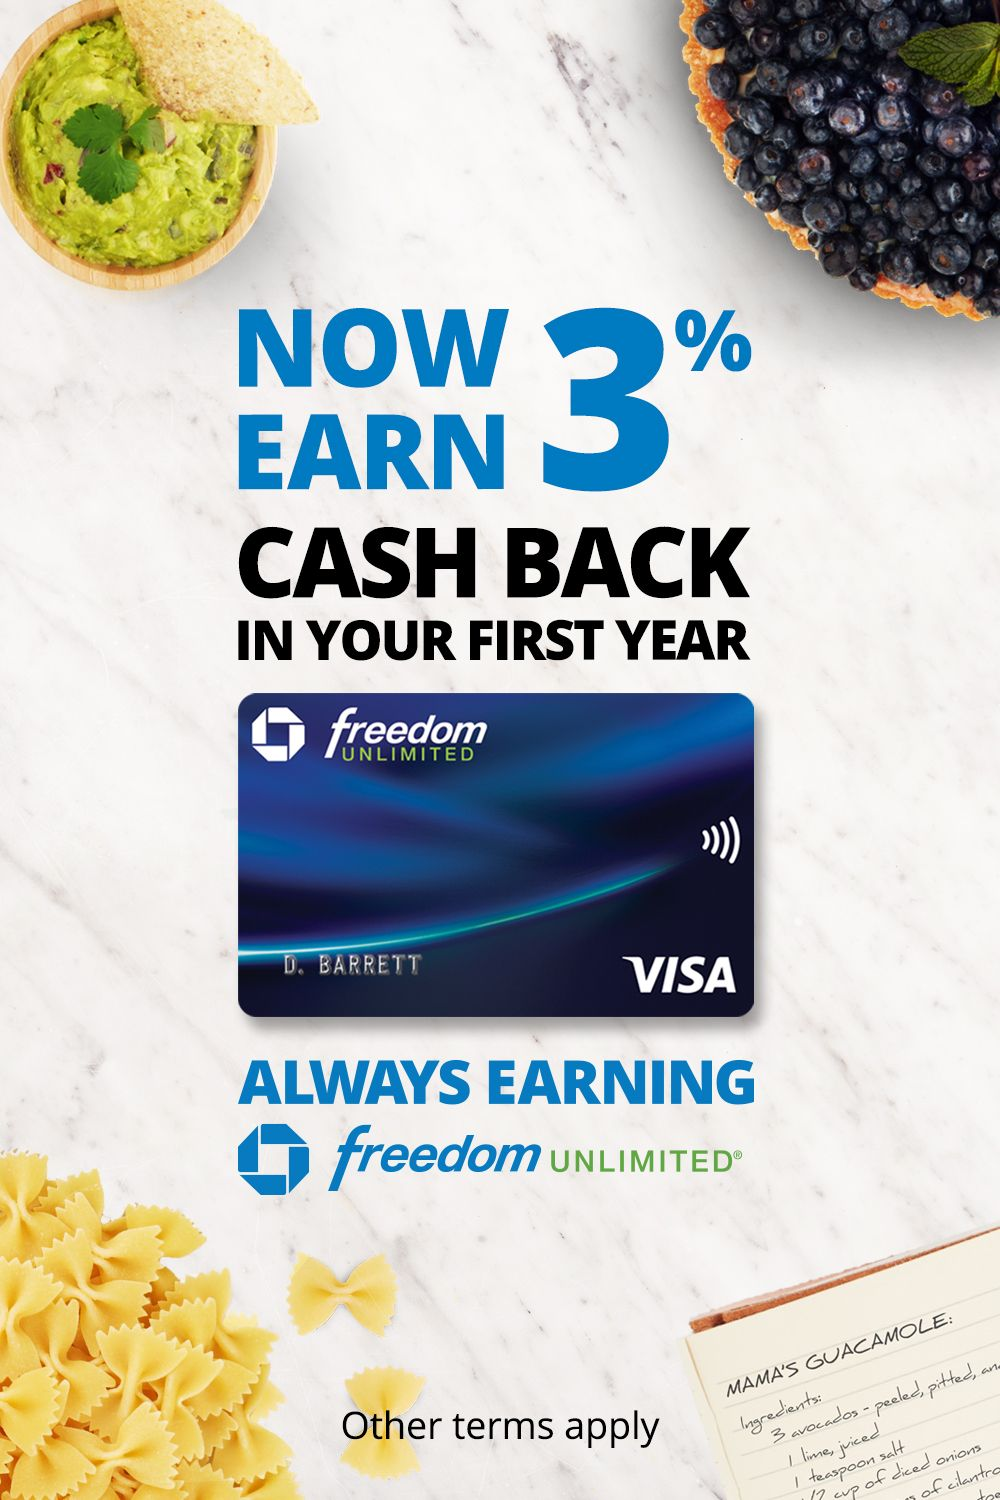 Get 0 Intro Apr For 15 Mos Plus No Annual Fee Chase Freedom Unlimited Always Earning